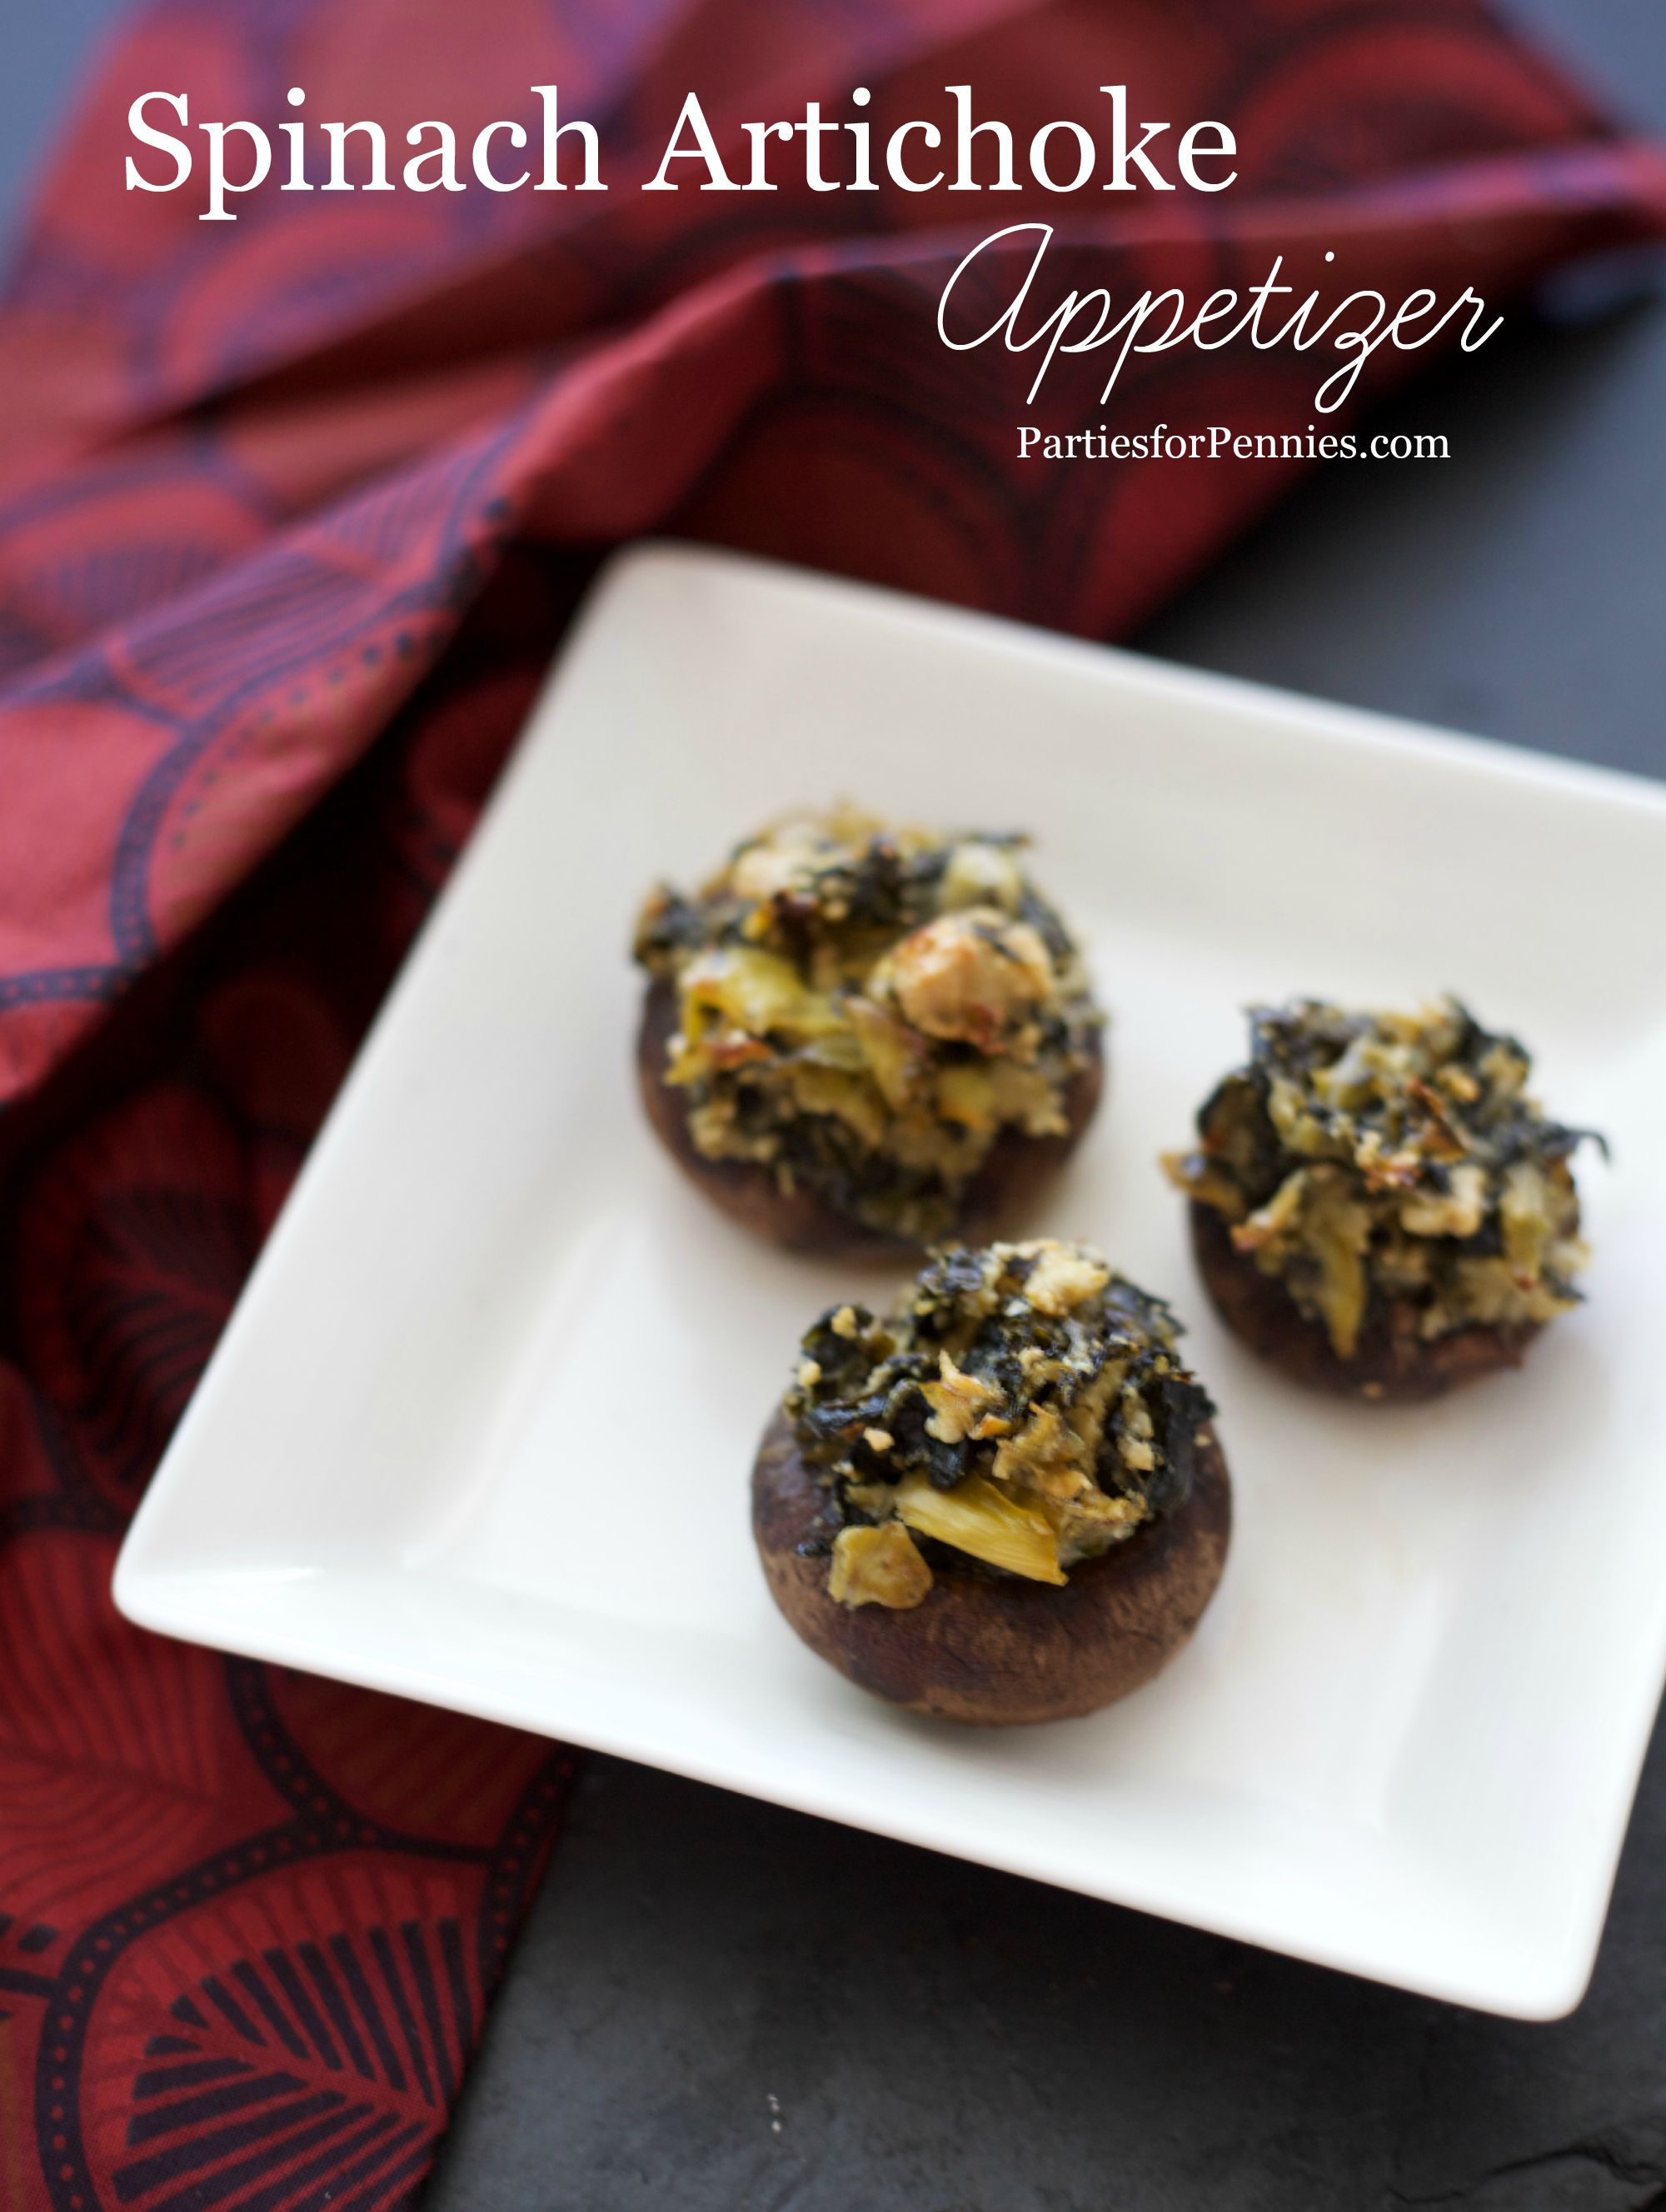 Spinach Artichoke Appetizer by PartiesforPennies.com | 20 Budget-Friendly Appetizers